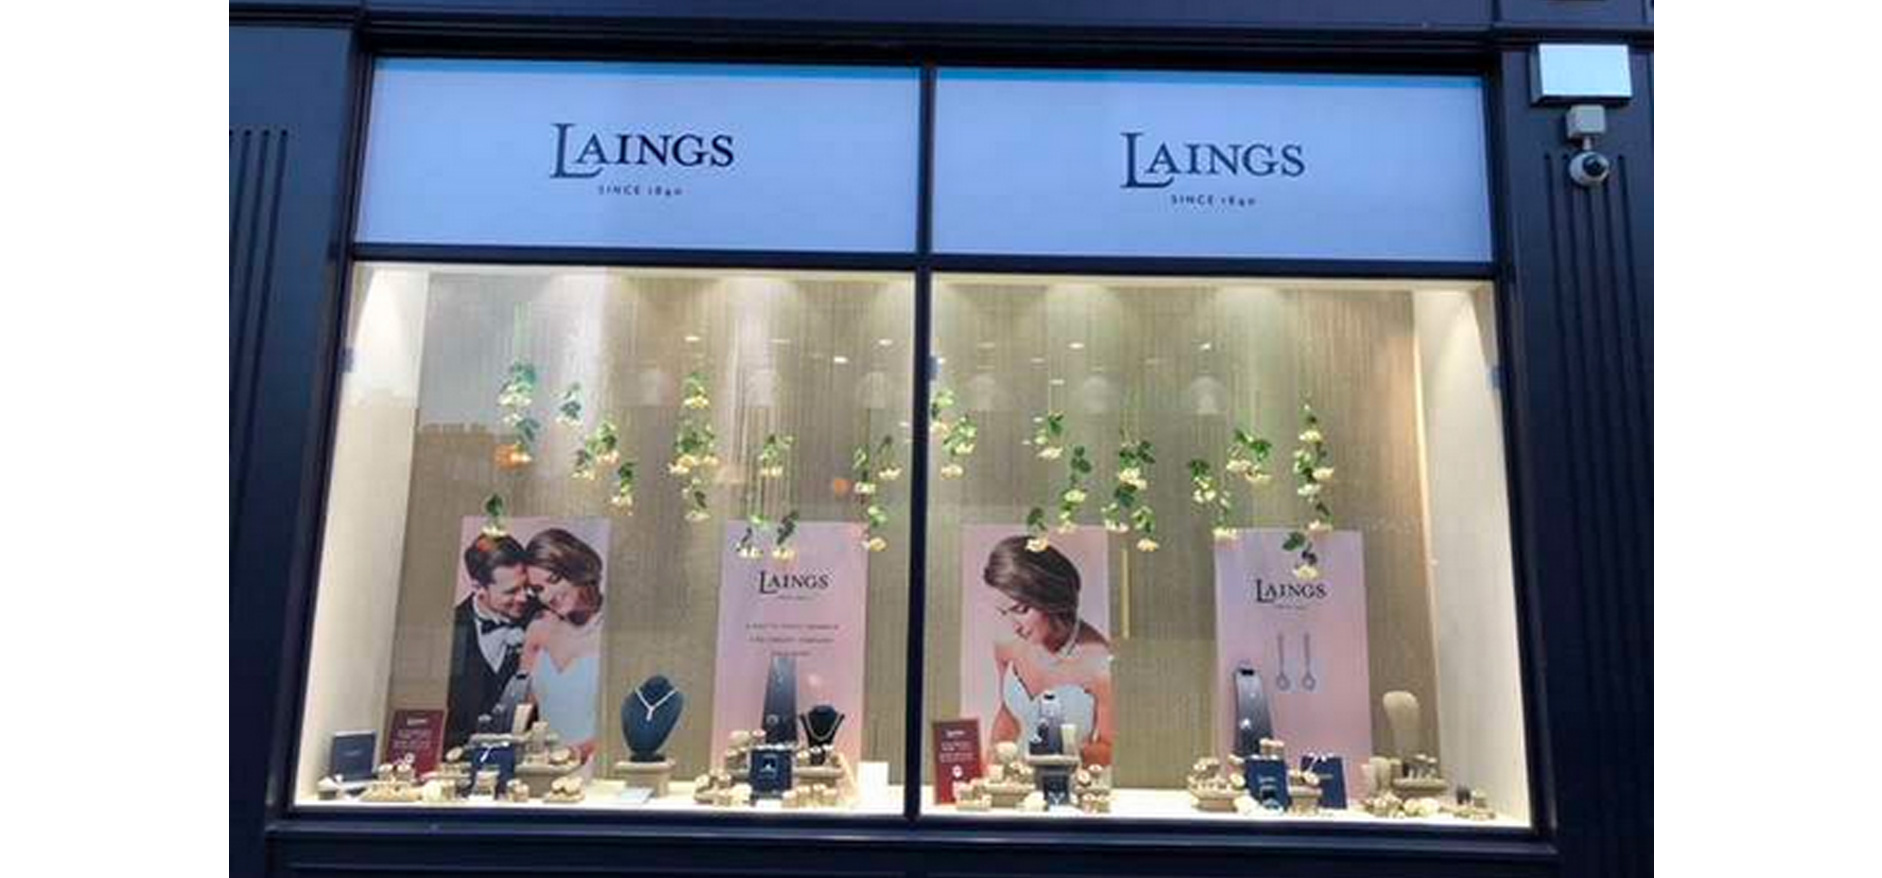 Laings visual merchandising and store front